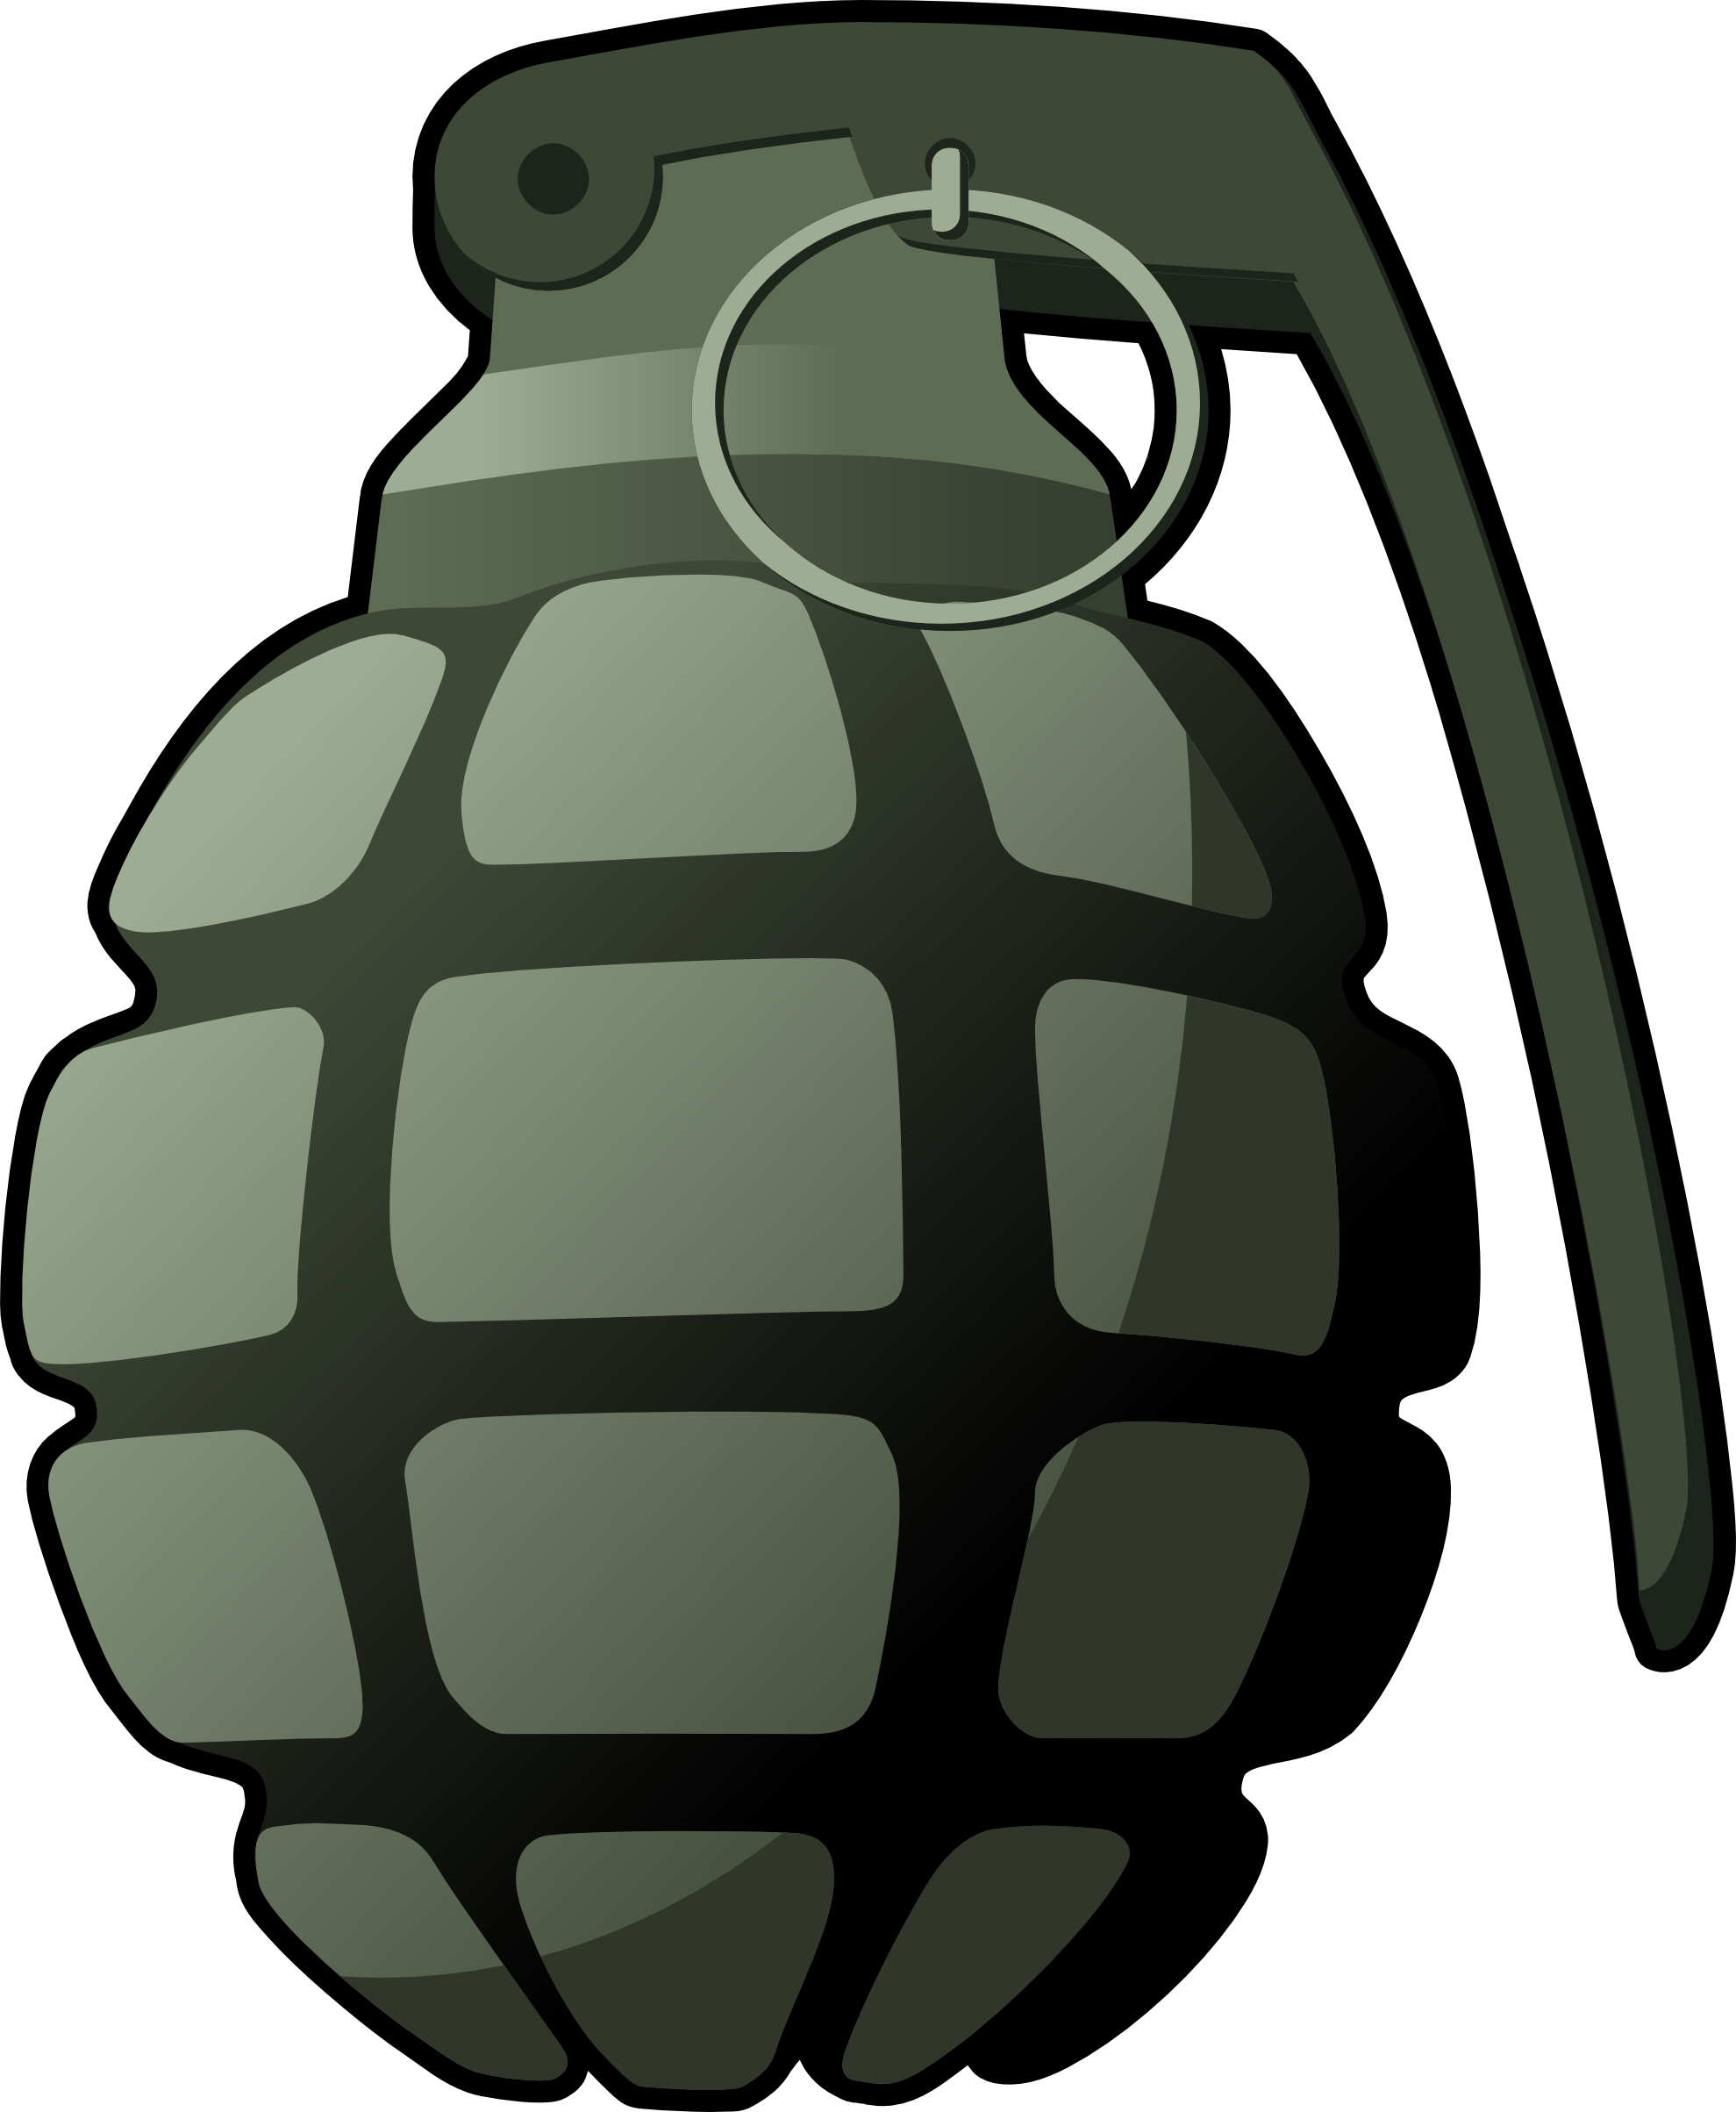 Nine isolated stock photo. Explosion clipart grenade explosion